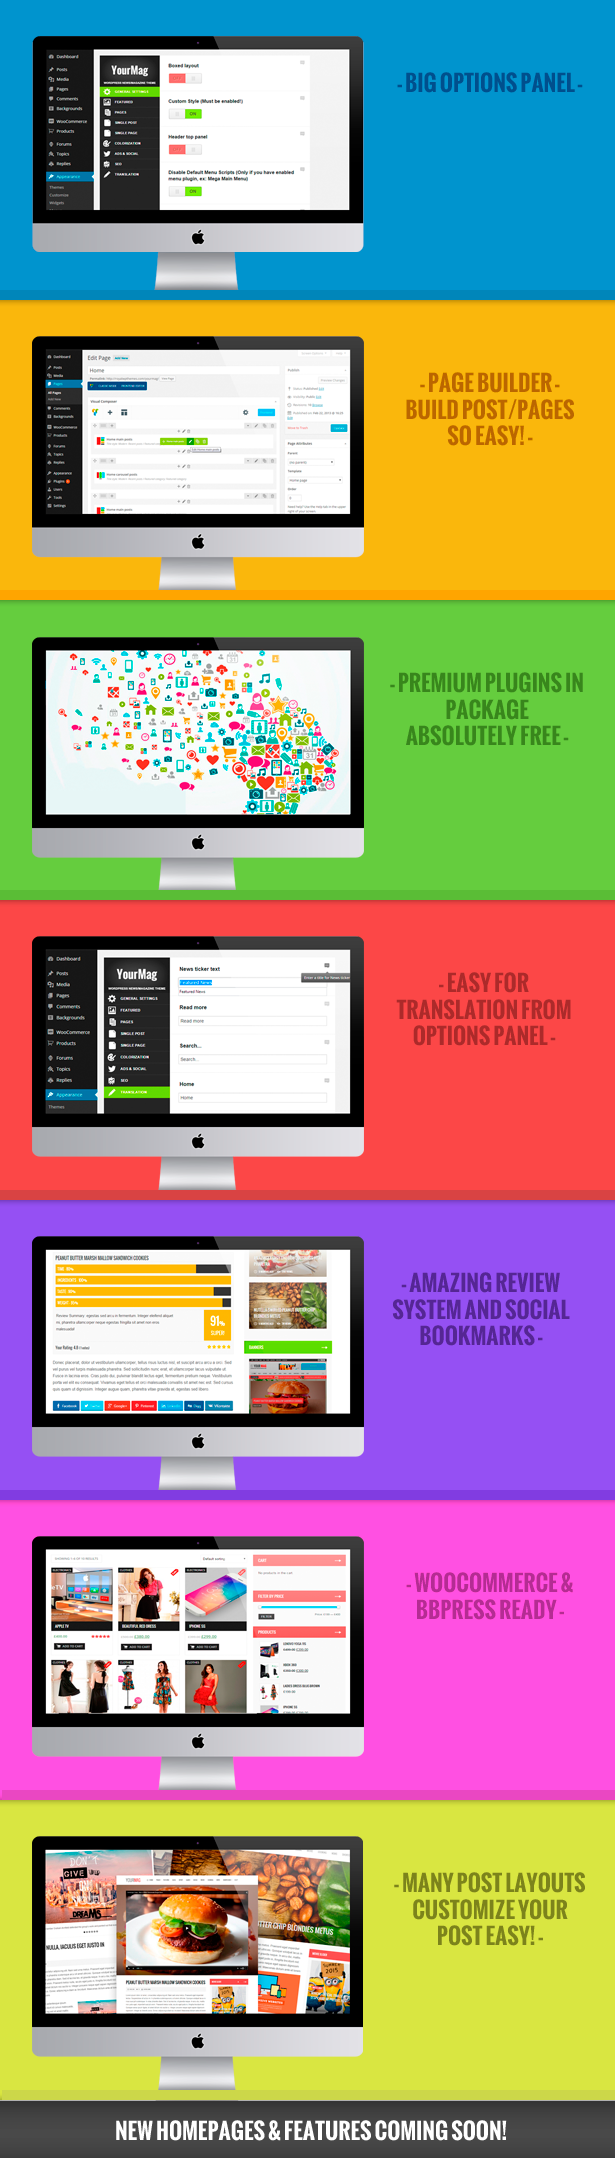 yourmag3 - YourMag - Universal WordPress News/Magazine Theme